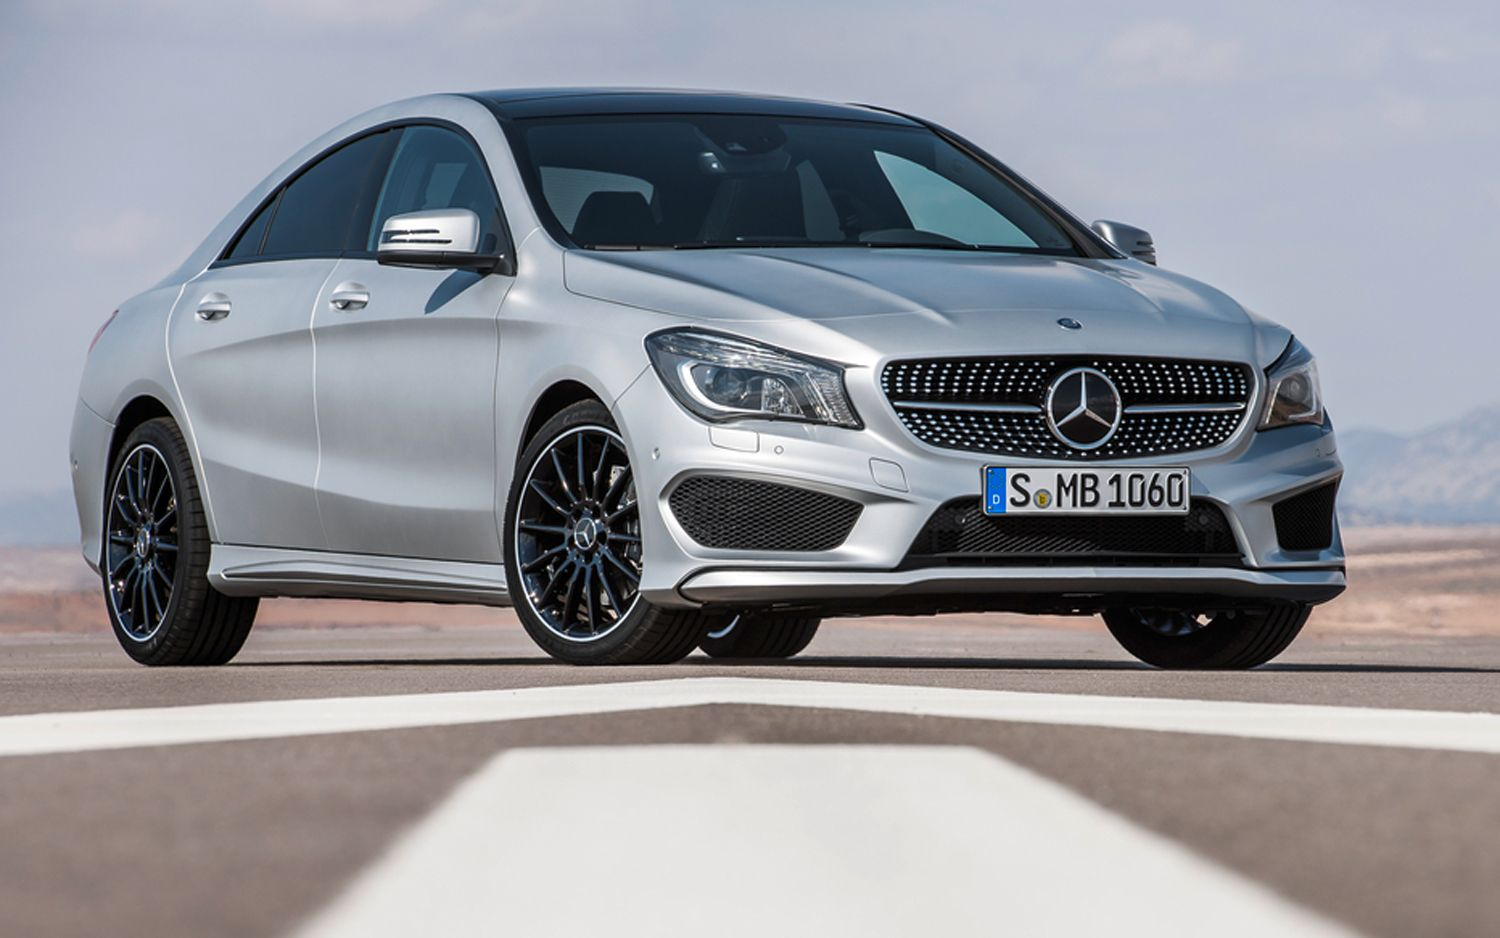 2014 Mercedes Benz Cla S Base Price Of 30 825 Revealed In Super